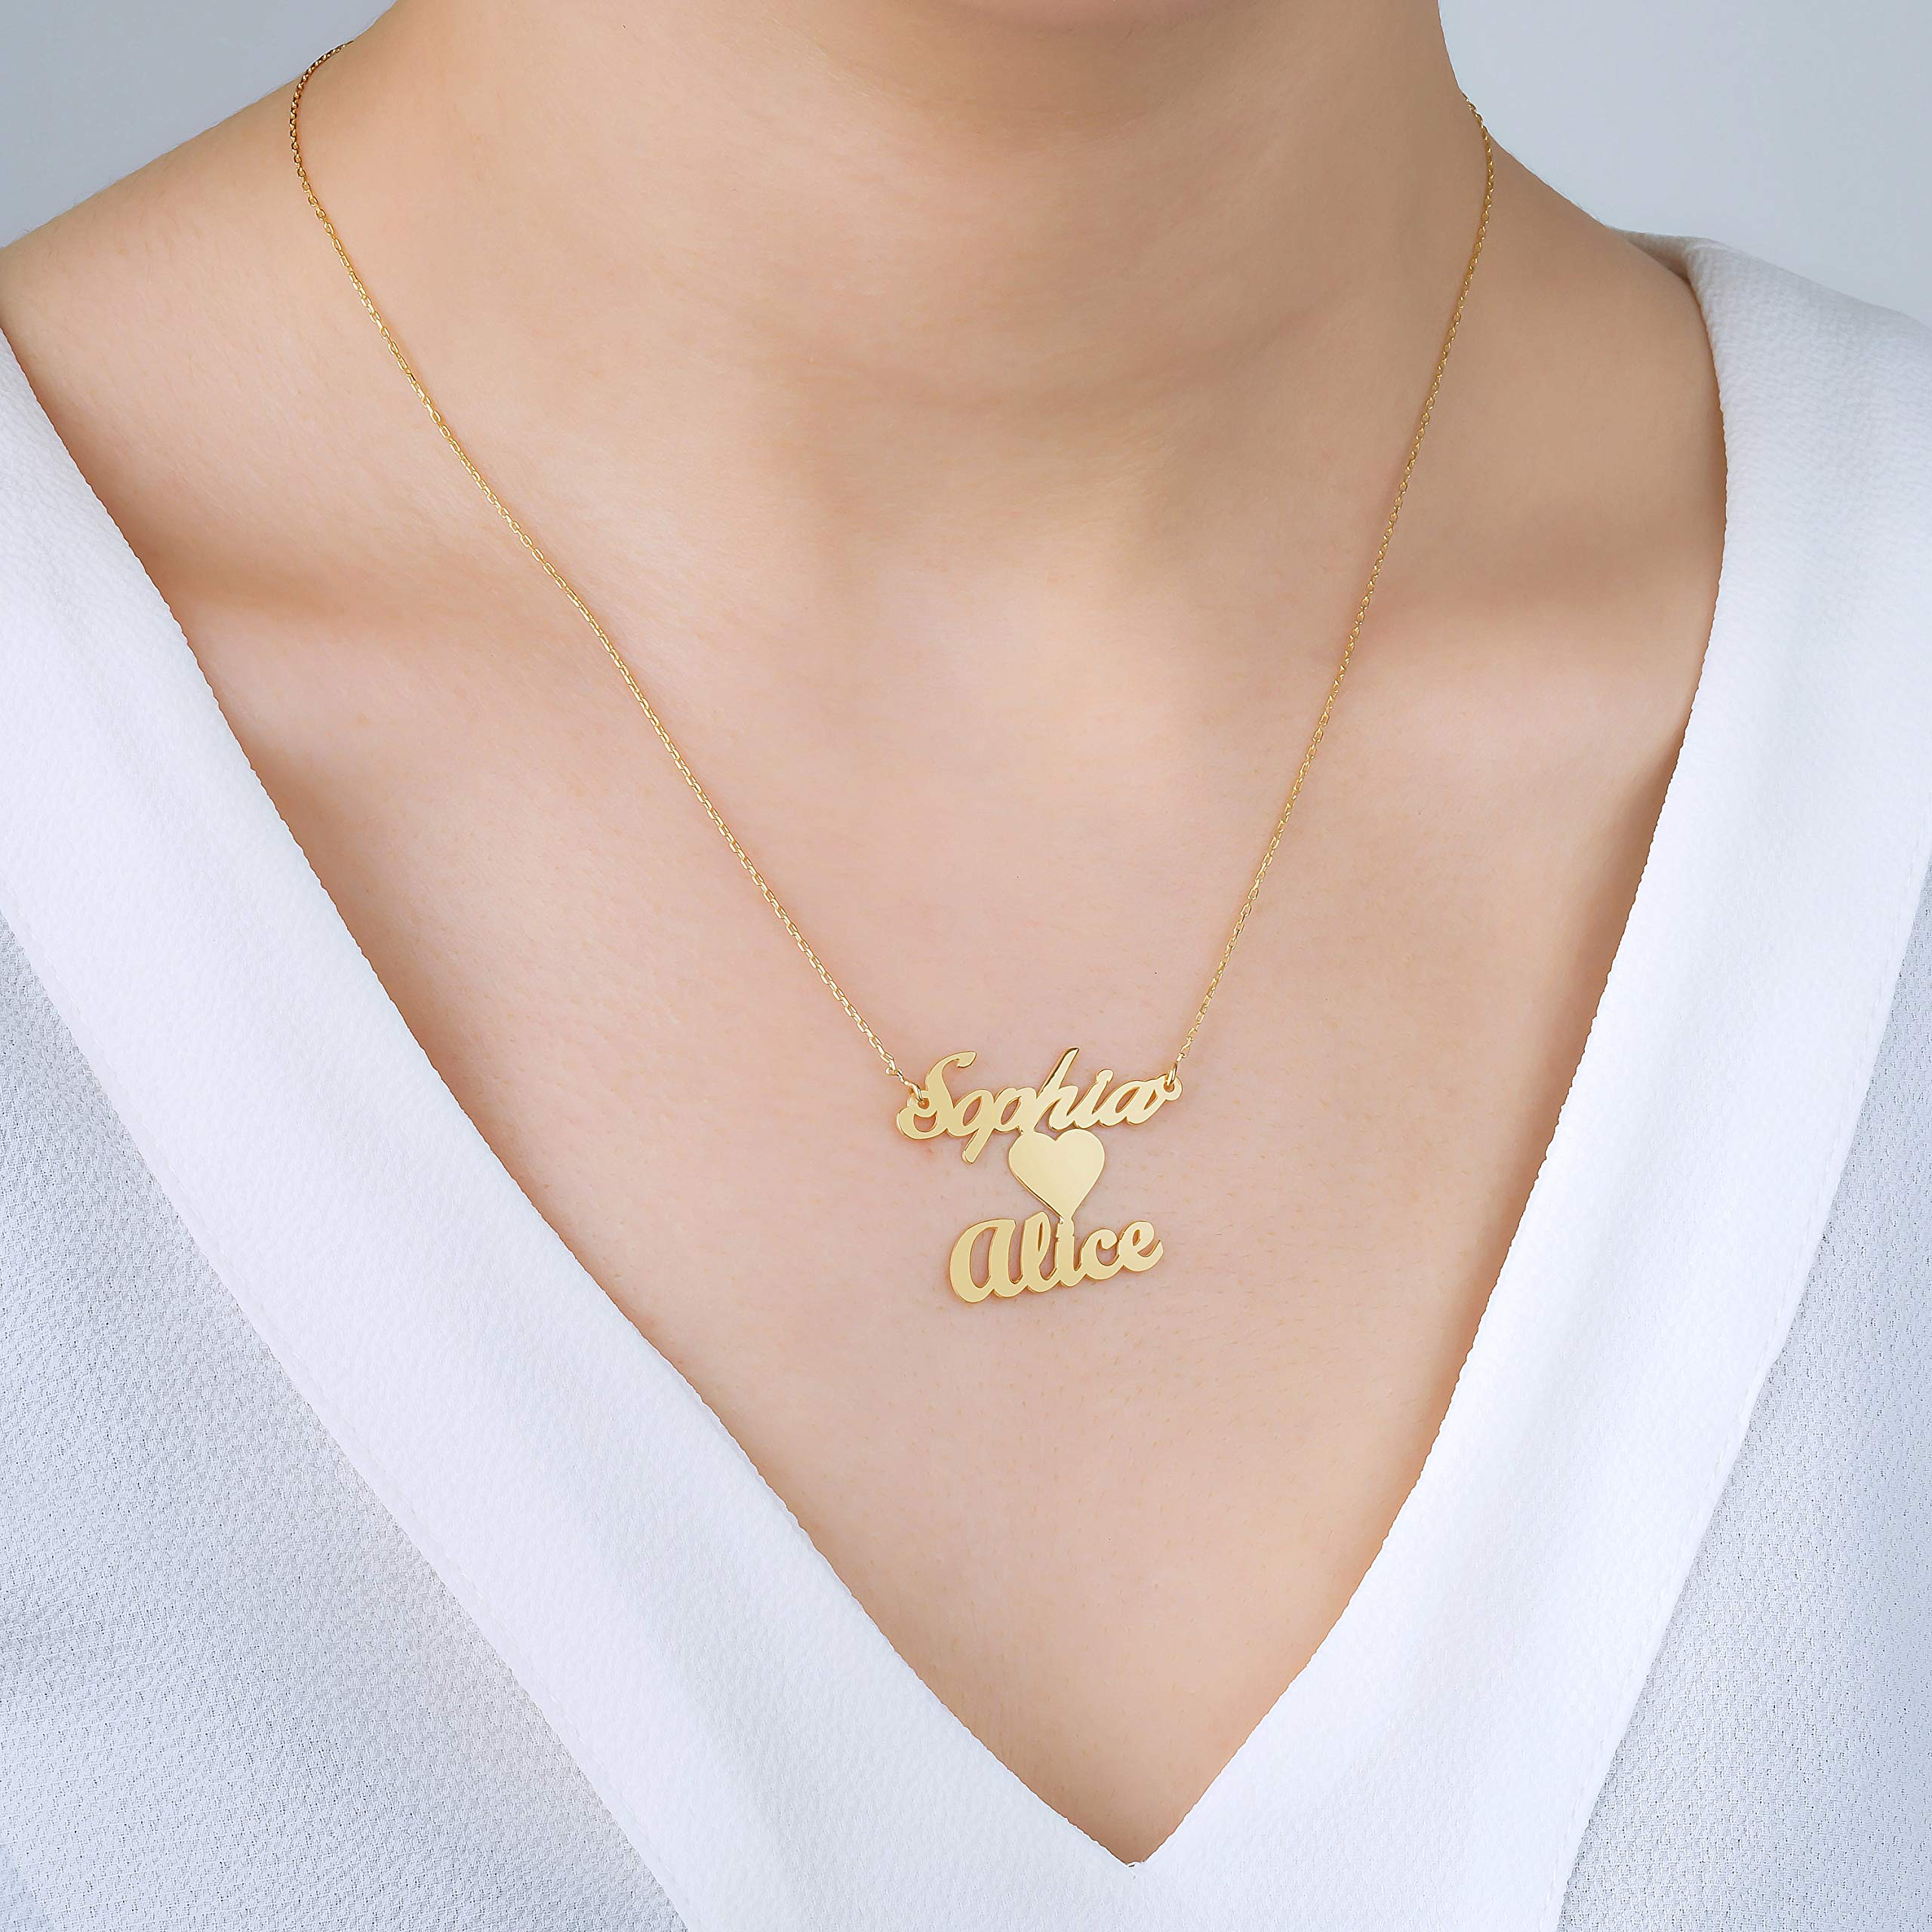 Heart Necklace In Middle With Two Names 18K Gold Plated